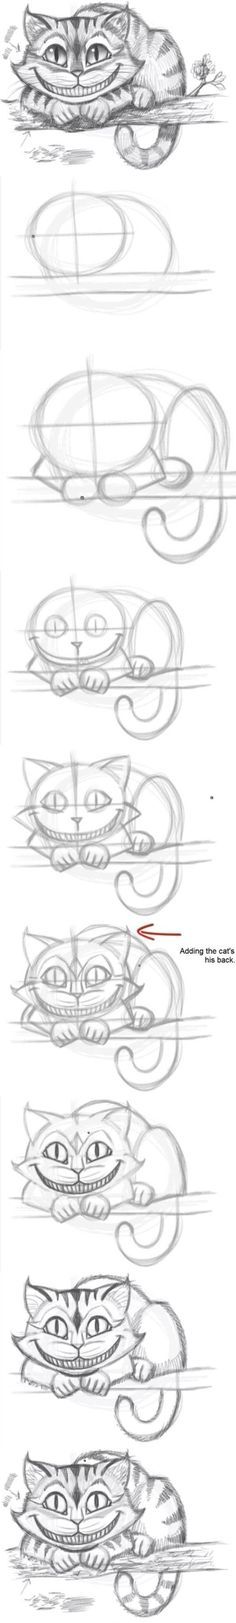 Cheshire cat drawing tutorial!